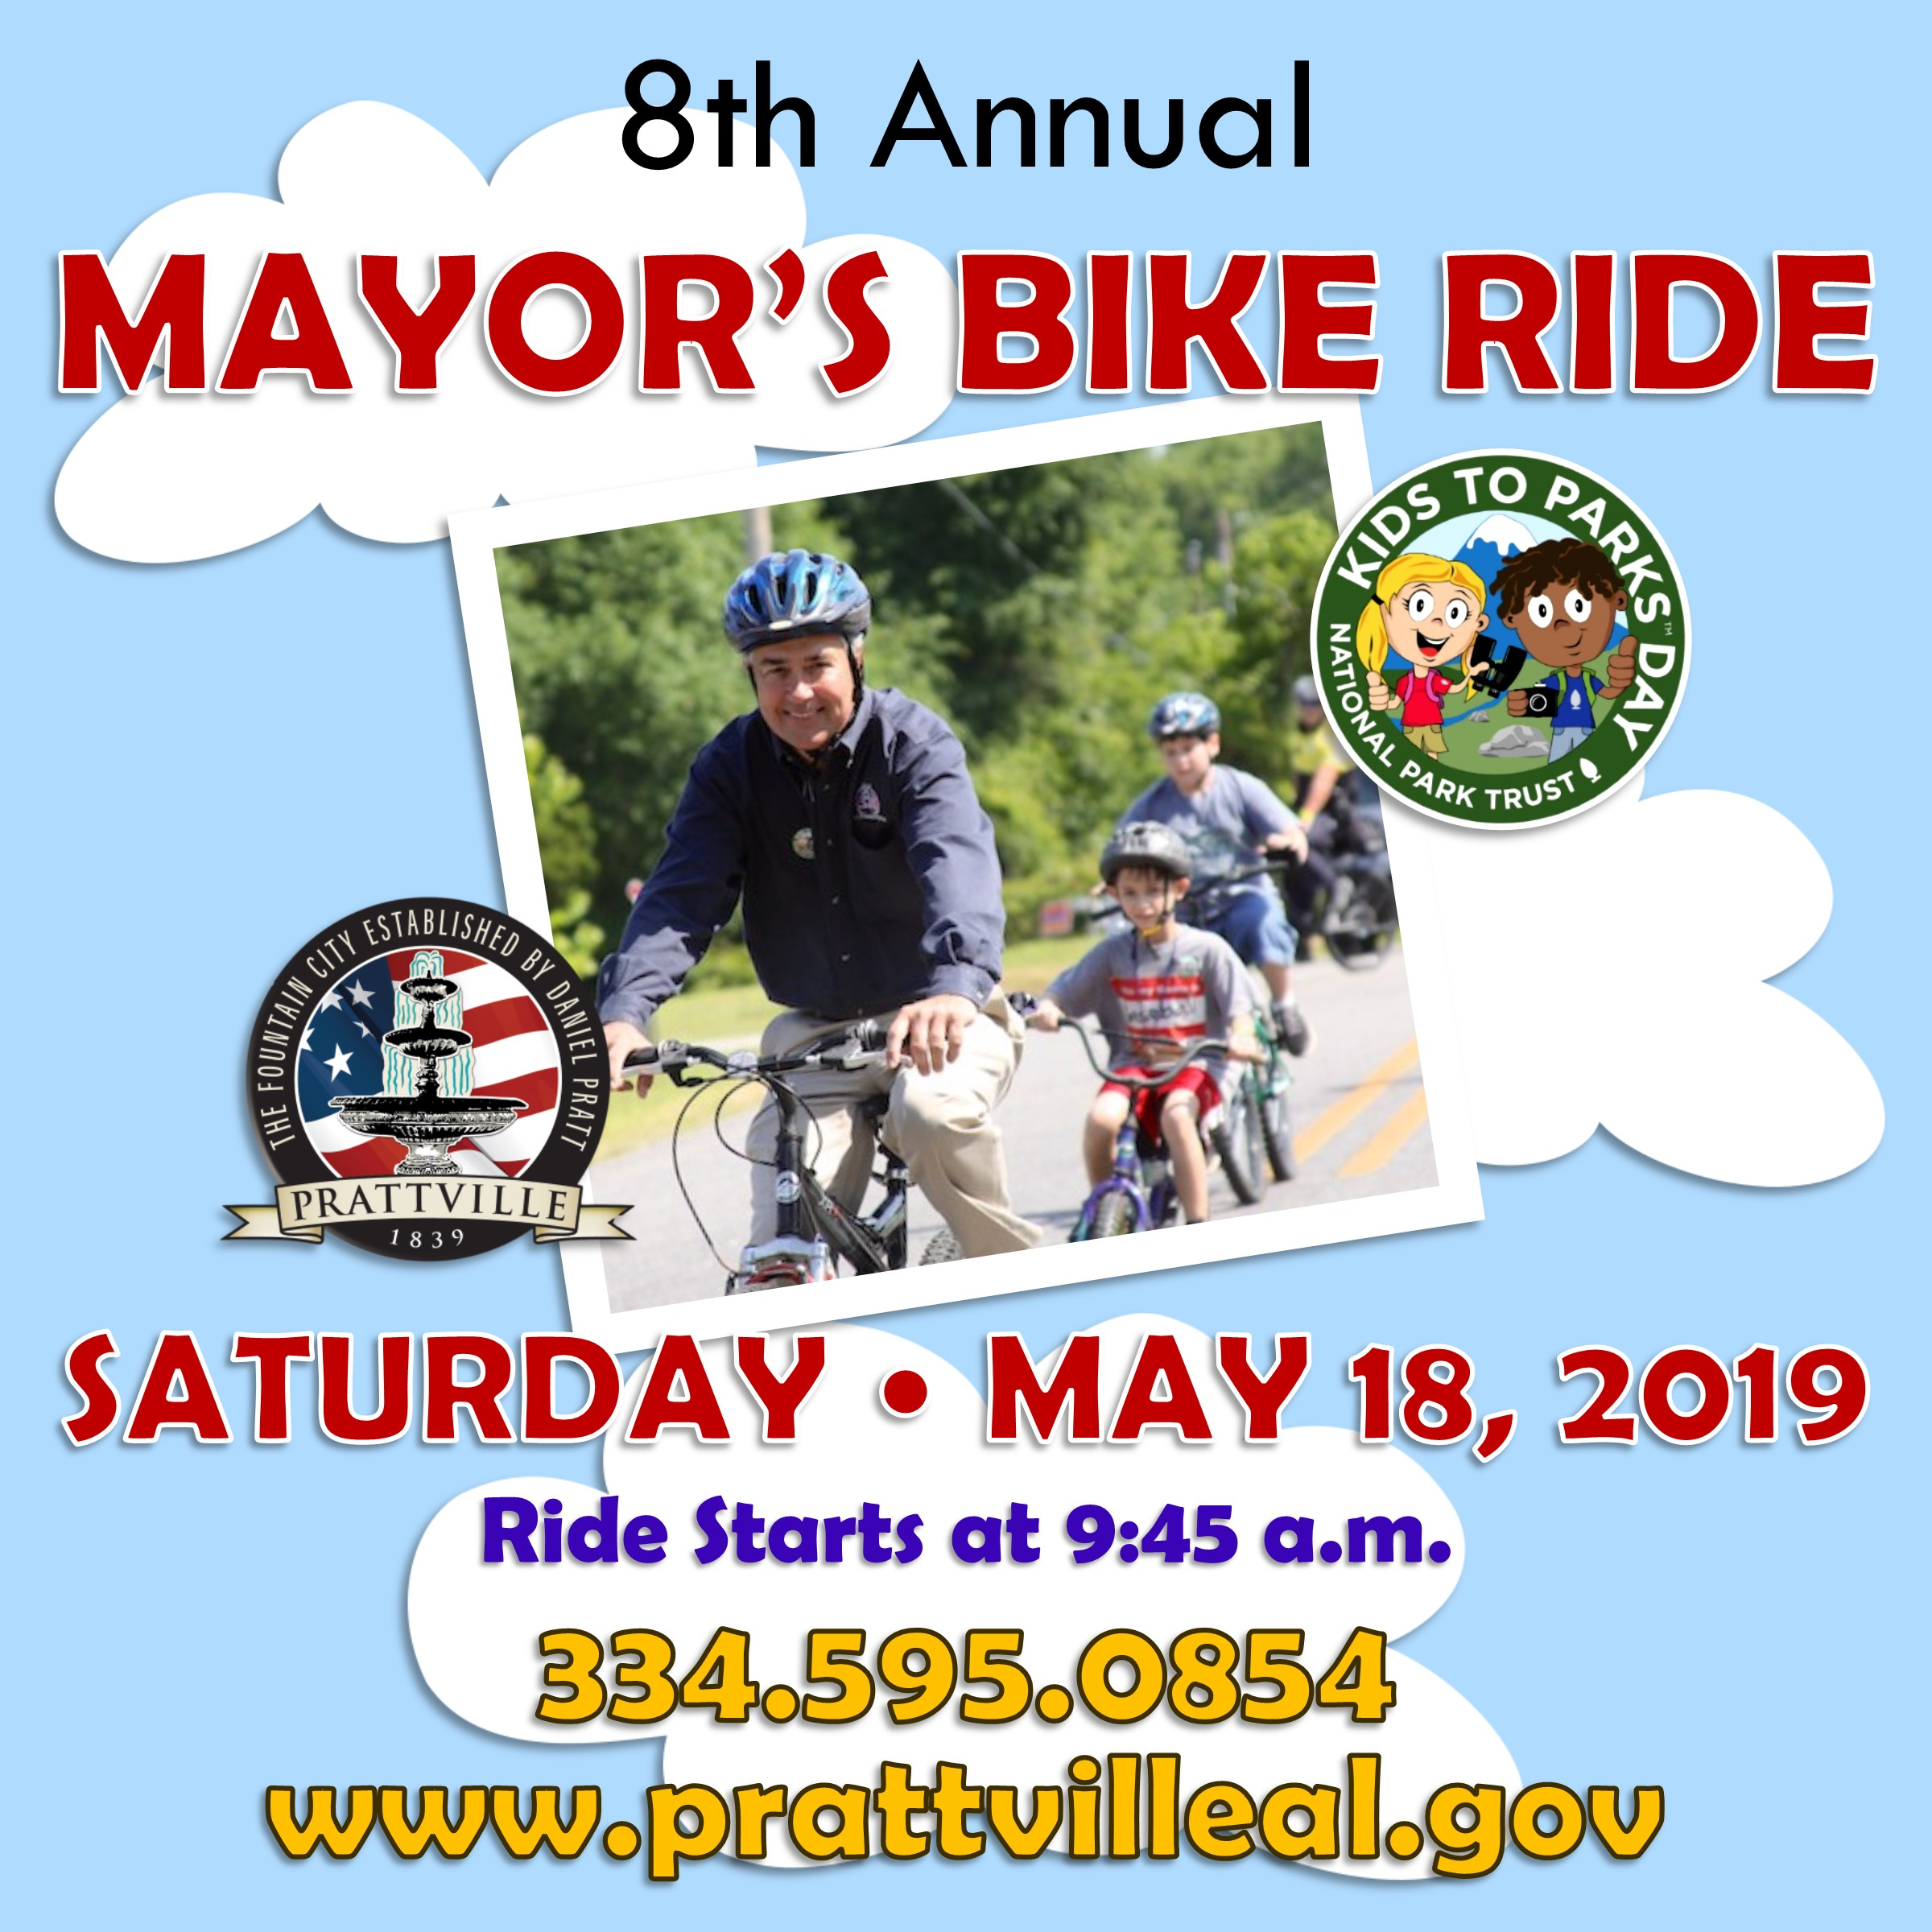 Mayor's Bike Ride Event 2019 - Race Connections